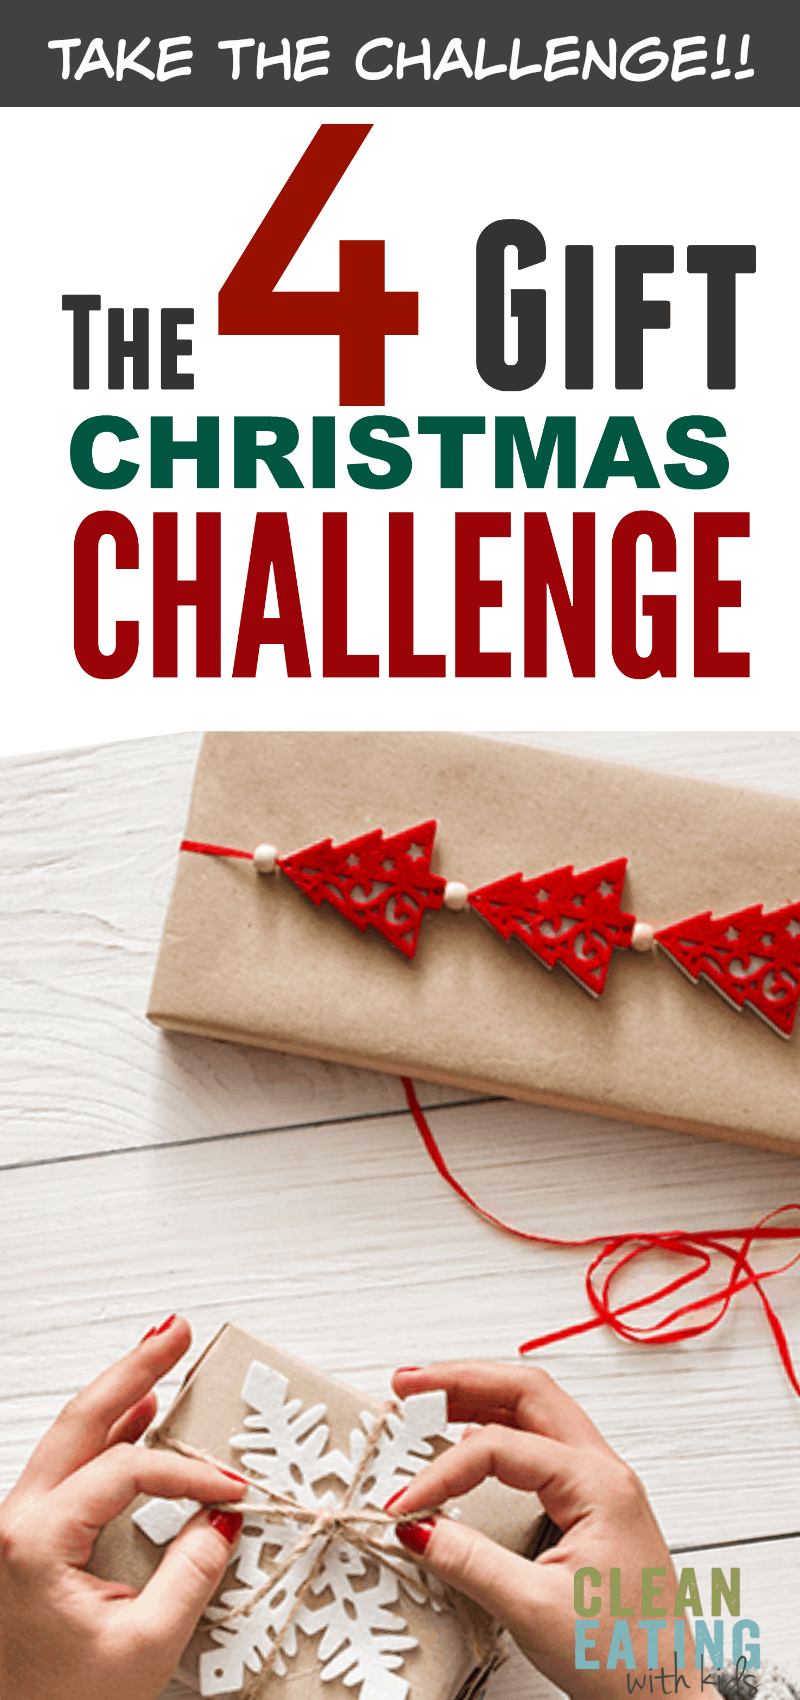 Take the 4 Gift Christmas Challenge this year. This minimalist 4 Gift Rule will change Christmas morning for your family. Less Stress, More Gratitude.